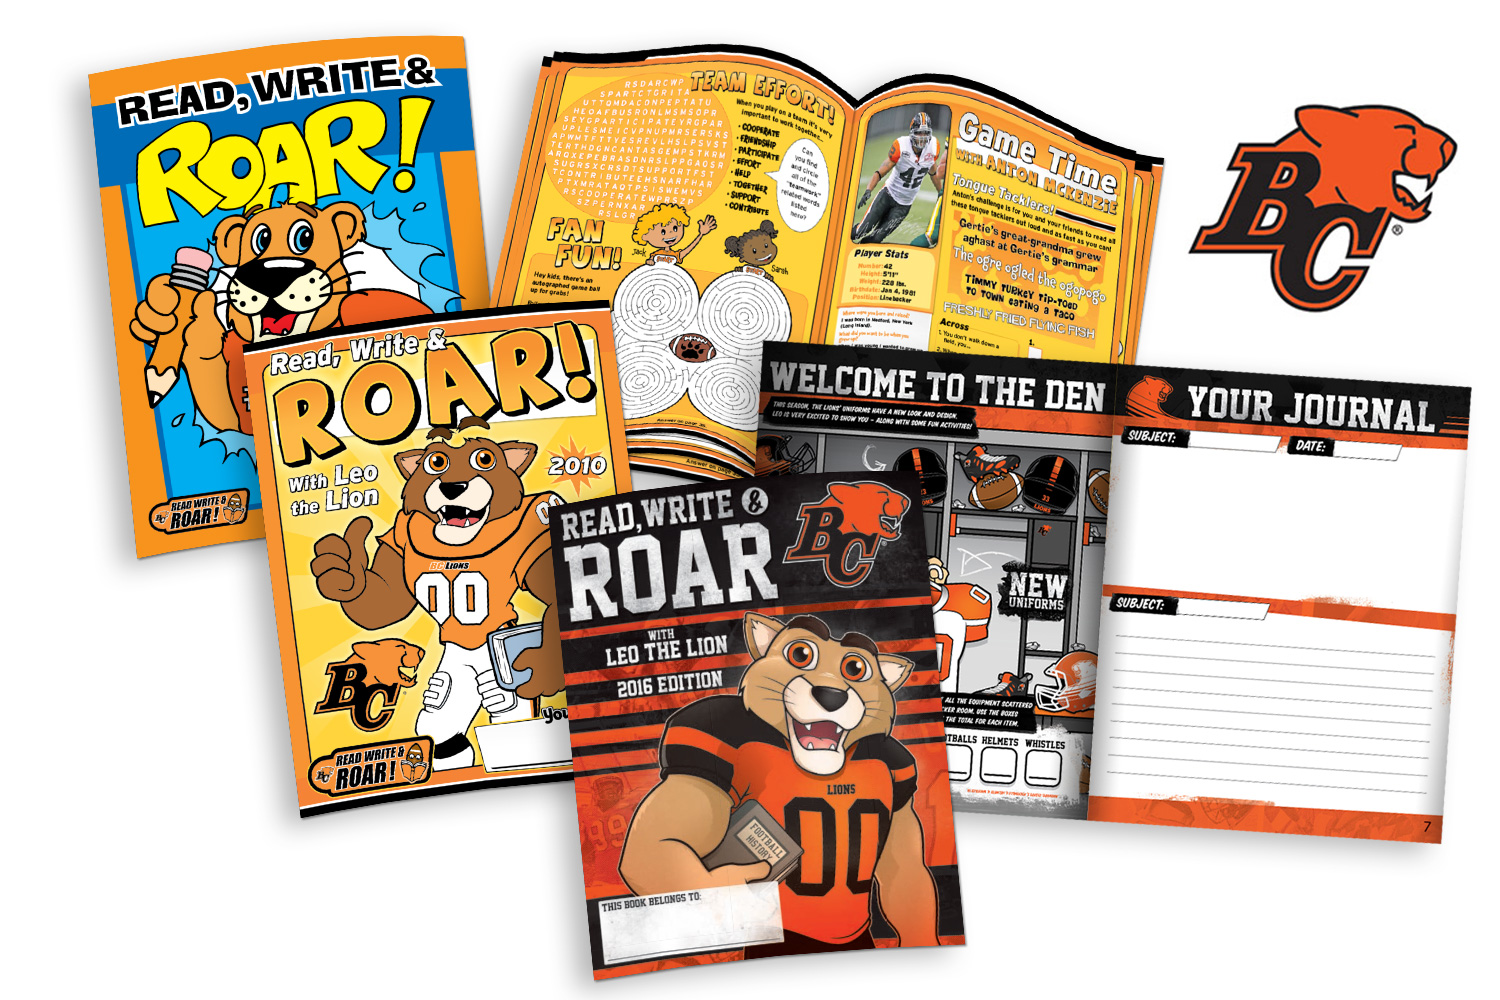 Top to bottom: BC Lions' activity book examples from 2006, 2010, and 2016 show the evolution of their  Read, Write & ROAR!  activity books.